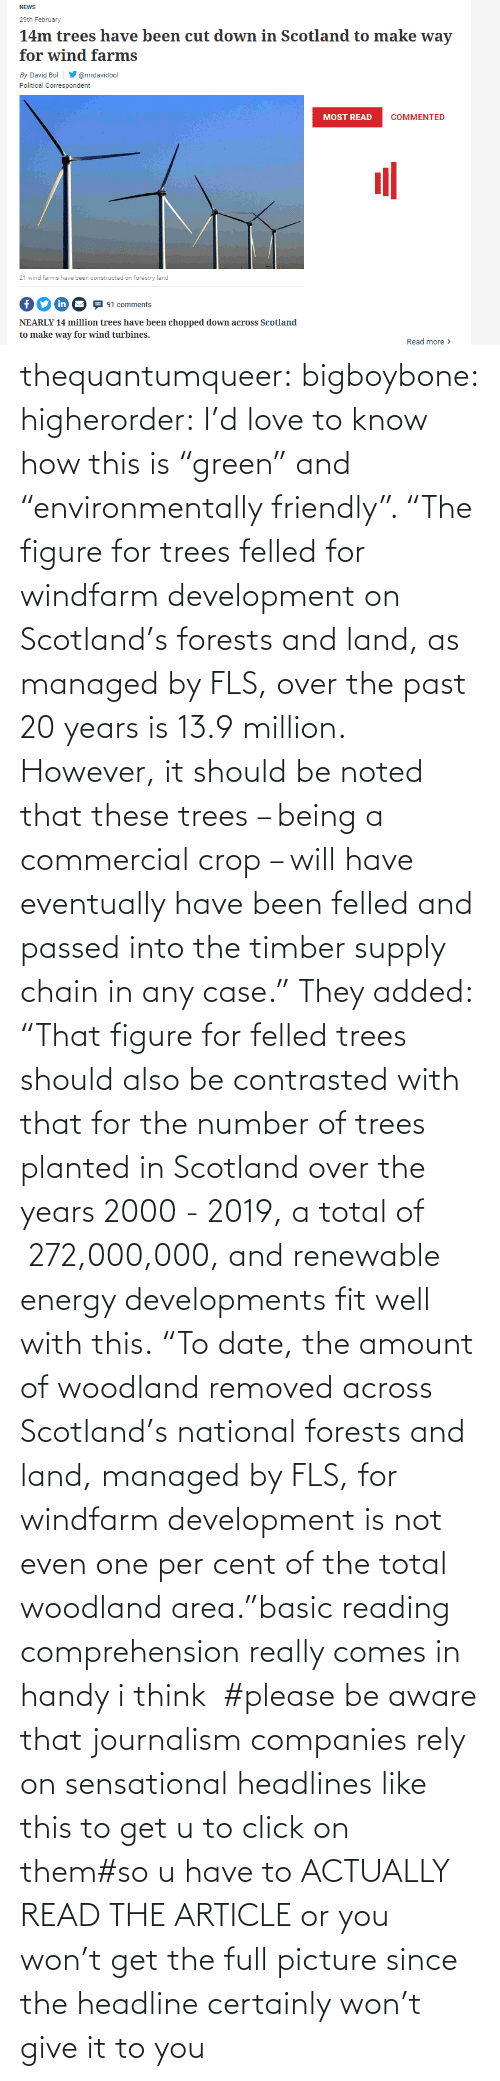 "i think: thequantumqueer: bigboybone:  higherorder: I'd love to know how this is ""green"" and ""environmentally friendly"".  ""The figure for trees felled for windfarm development on Scotland's forests and land, as managed by FLS, over the past 20 years is 13.9 million. However, it should be noted that these trees – being a commercial crop – will have eventually have been felled and passed into the timber supply chain in any case."" They added: ""That figure for felled trees should also be contrasted with that for the number of trees planted in Scotland over the years 2000 - 2019, a total of  272,000,000, and renewable energy developments fit well with this. ""To date, the amount of woodland removed across Scotland's national forests and land, managed by FLS, for windfarm development is not even one per cent of the total woodland area.""basic reading comprehension really comes in handy i think   #please be aware that journalism companies rely on sensational headlines like this to get u to click on them#so u have to ACTUALLY READ THE ARTICLE or you won't get the full picture since the headline certainly won't give it to you"